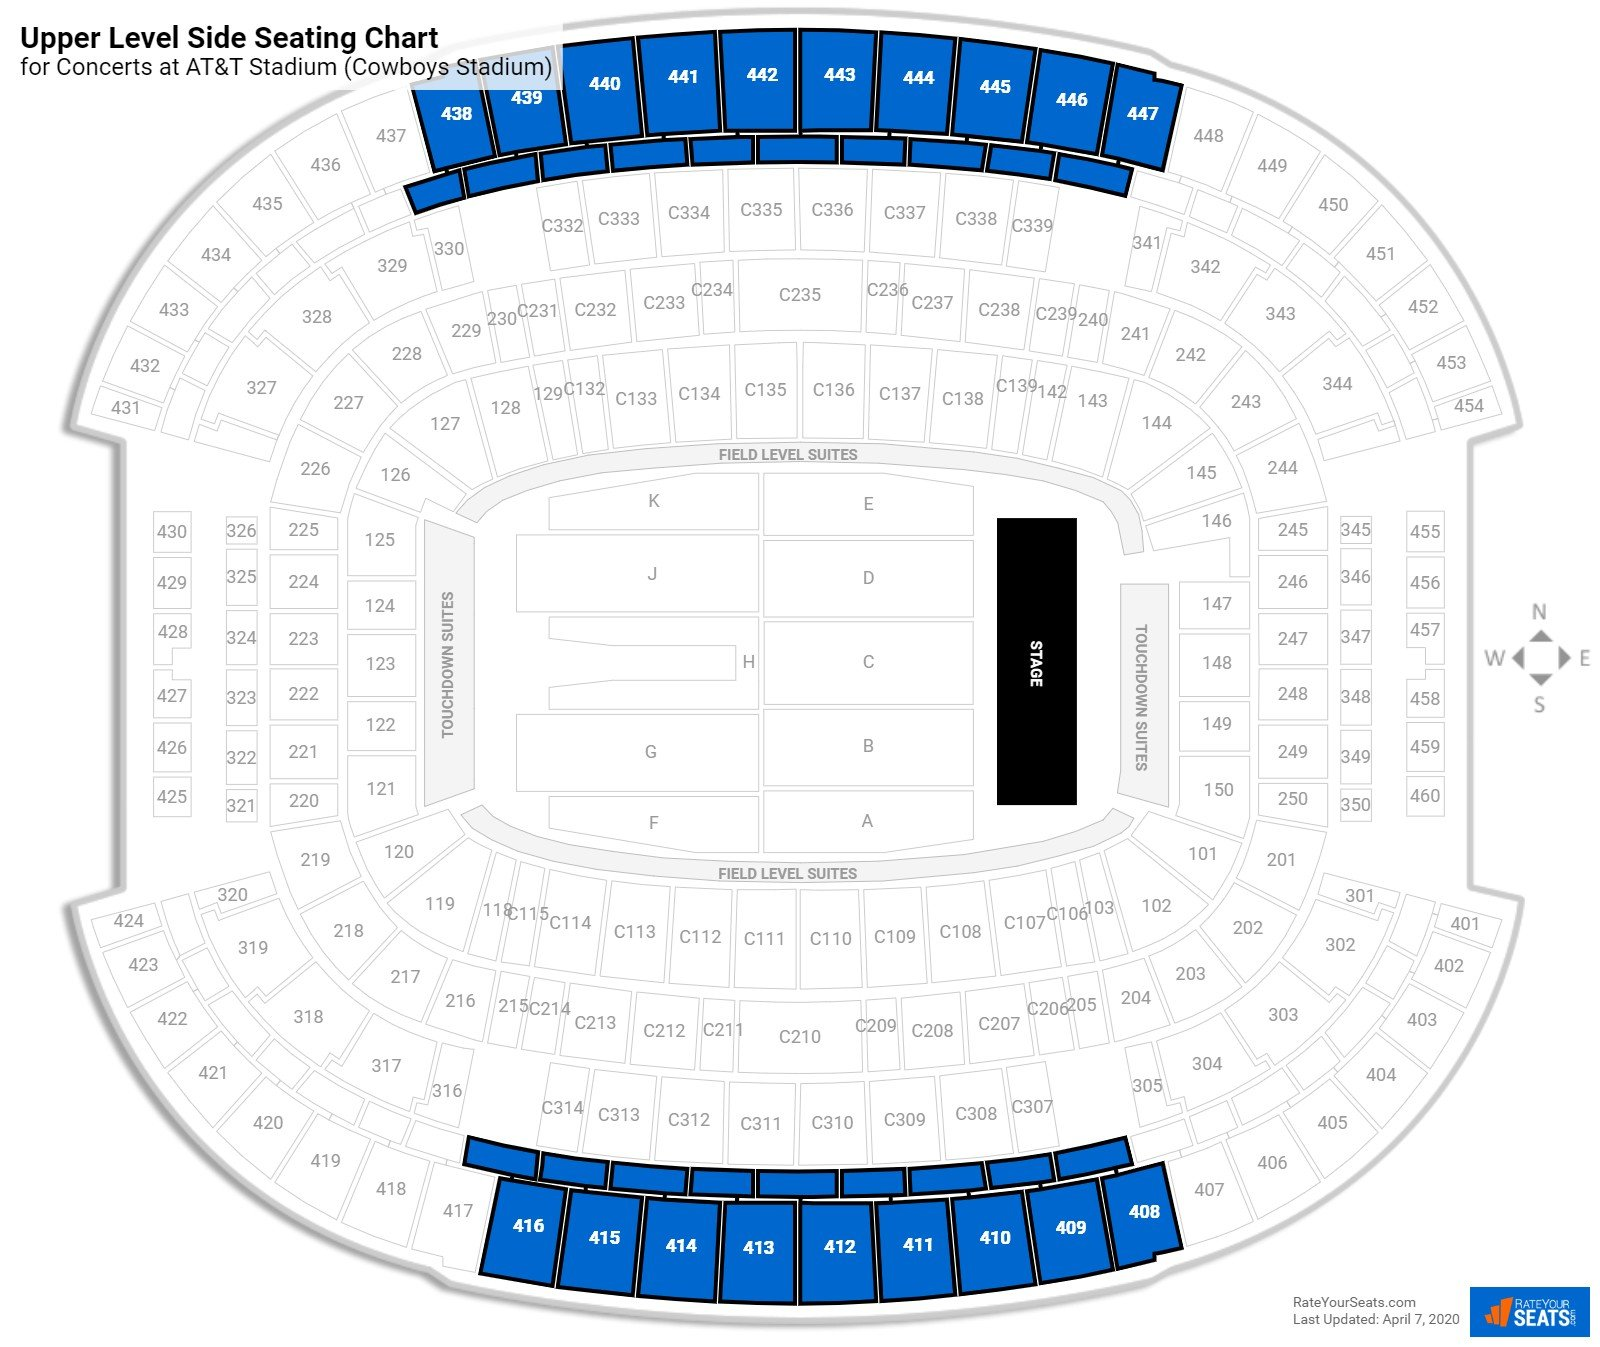 AT&T Stadium Seating for Concerts - RateYourSeats.com